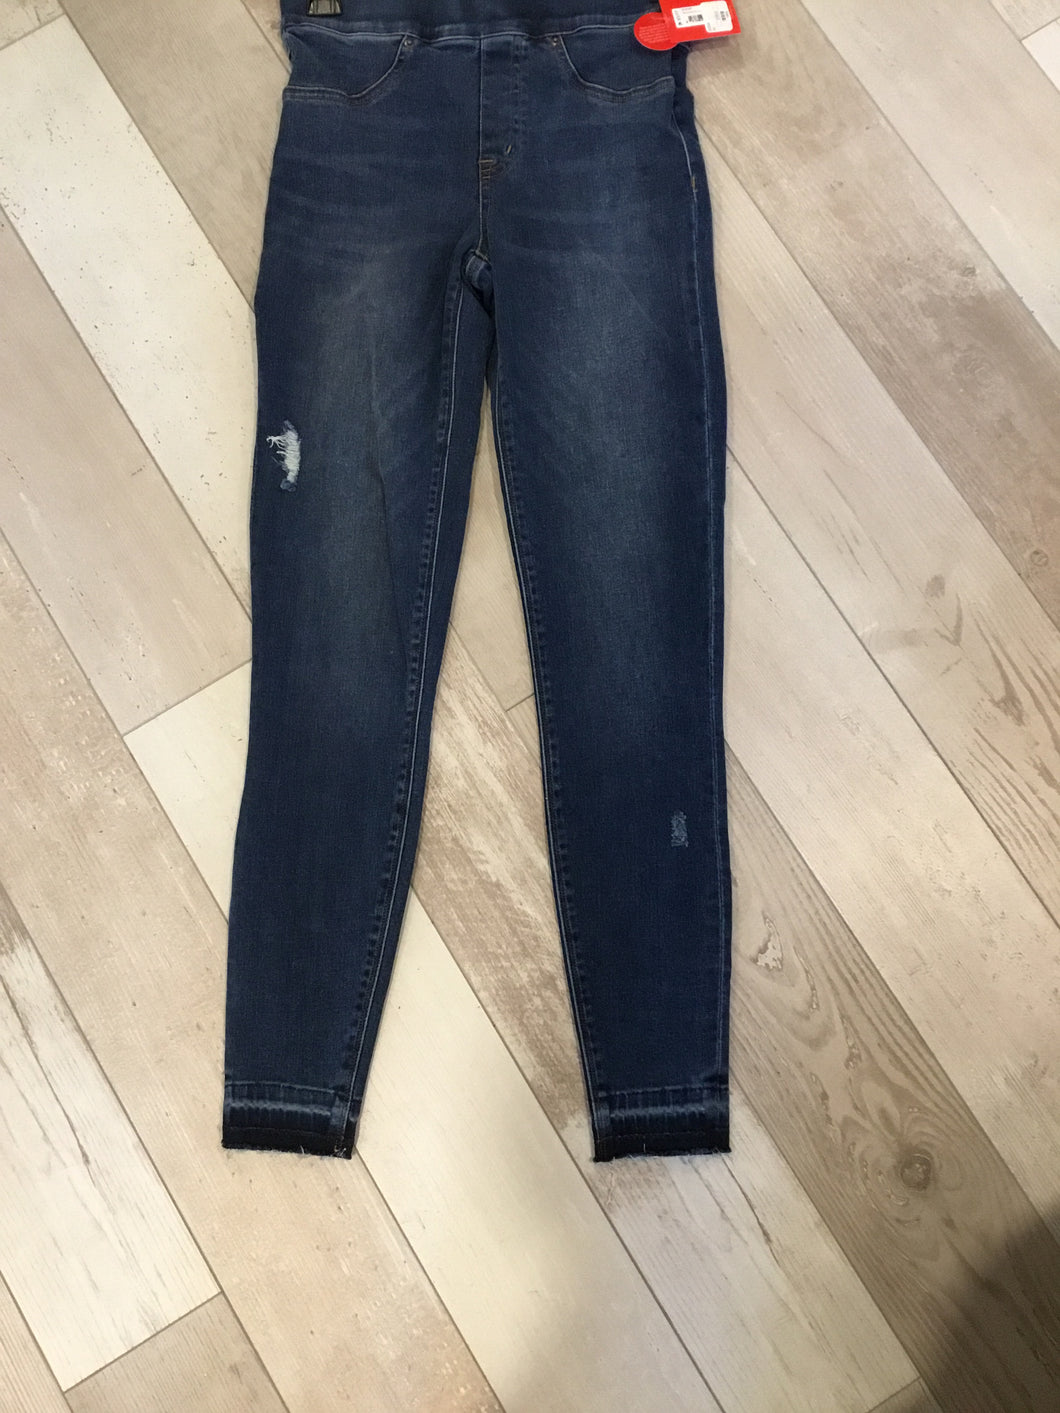 Spanx distressed jean leggings